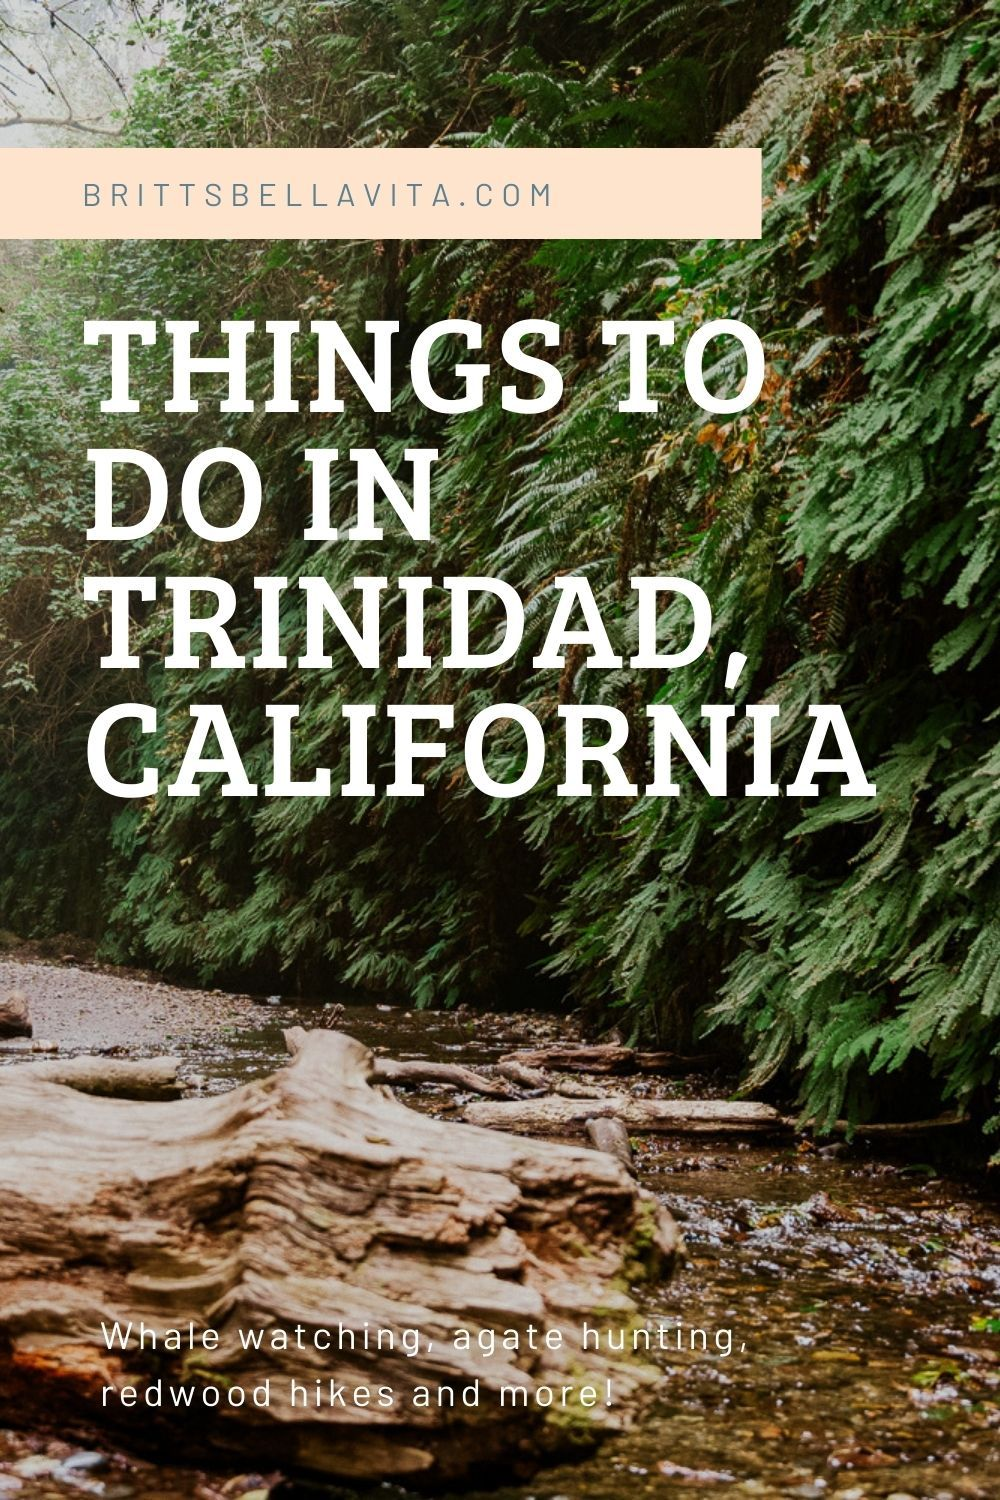 Things to Do in Trinidad, California | Best Hiking